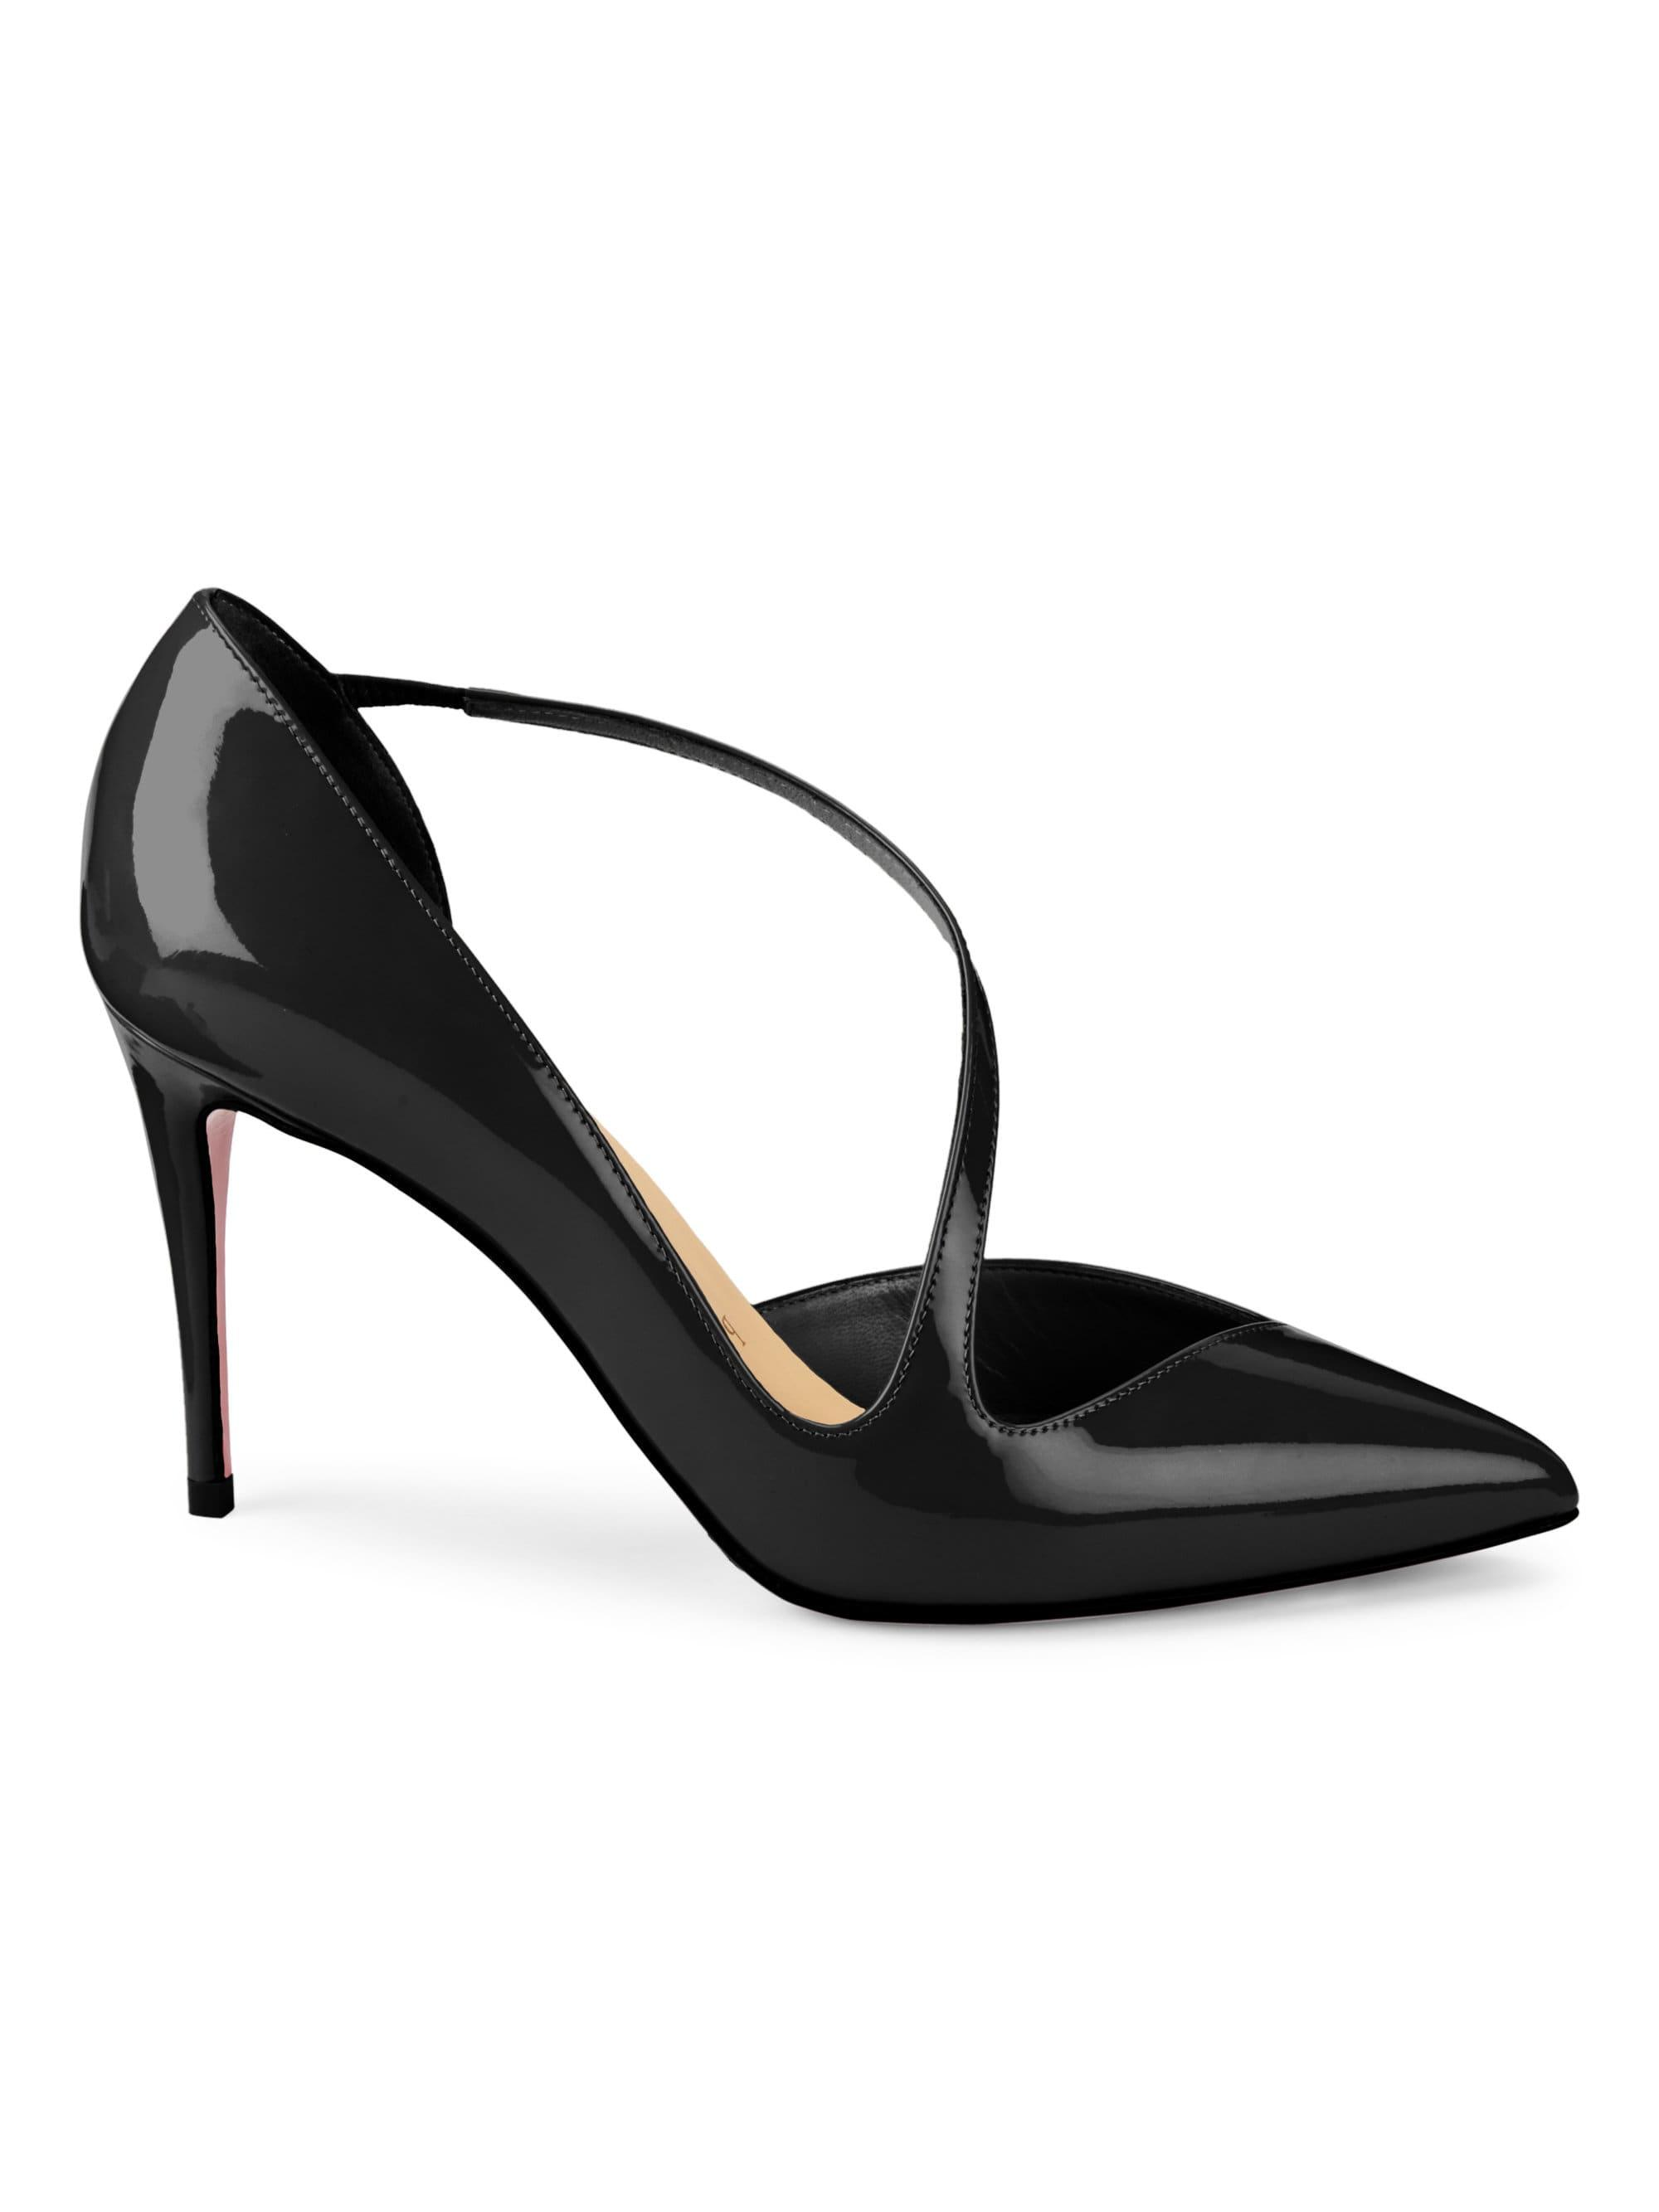 fa7071c1b3ab Christian Louboutin - Black Jumping 85 Point Toe Patent Leather Pumps - Lyst